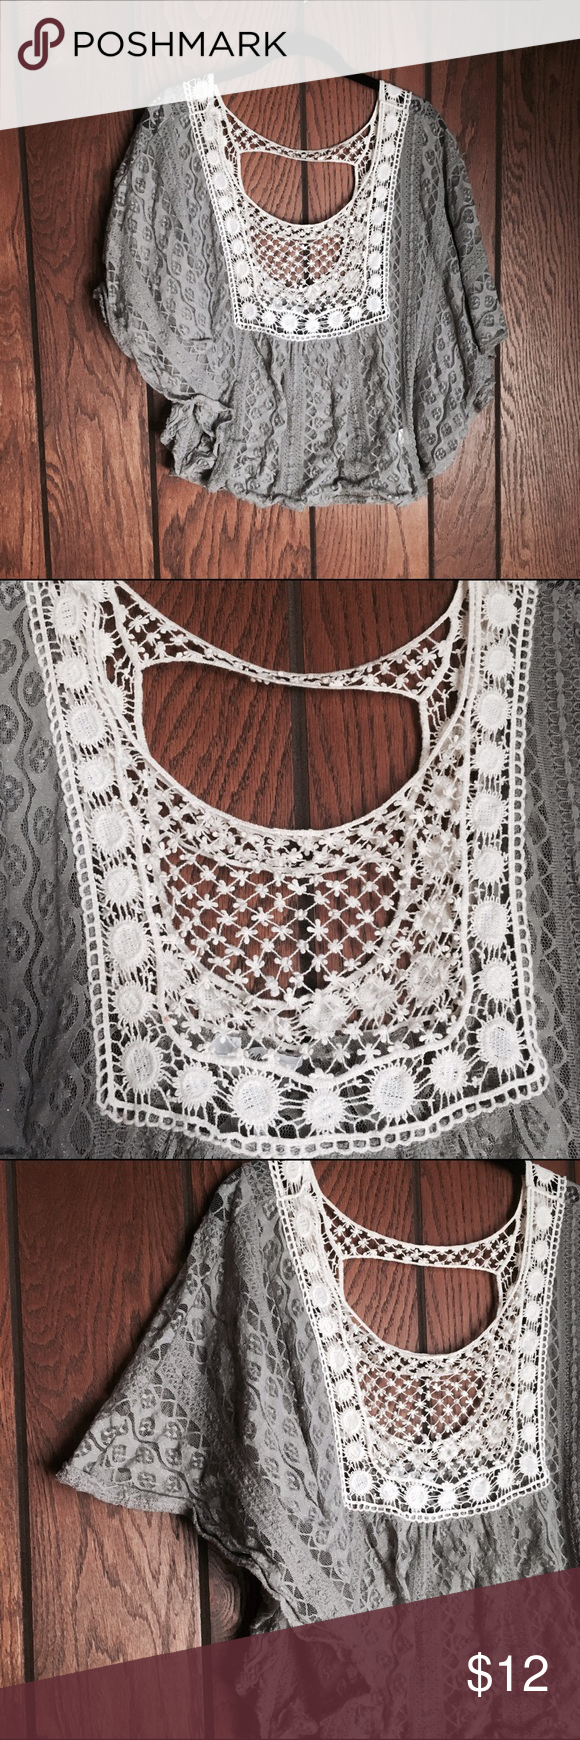 Kirra Grey Crochet Open Back Flowy Shirt Size Med This shirt is beautiful with a tank top or bandeau underneath. This is the perfect addition to a totally boho closet! The crochet is in perfect condition, which allows for you to stay cool during those hot American summer days 😎 the open back is super cute as well as the flowy sleeves. I love this shirt but unfortunately it doesn't fit me like it used to!! Enjoy ladies! Feel free to bundle, offer, and ask questions! Happy shopping 💕❤️ Kirra…